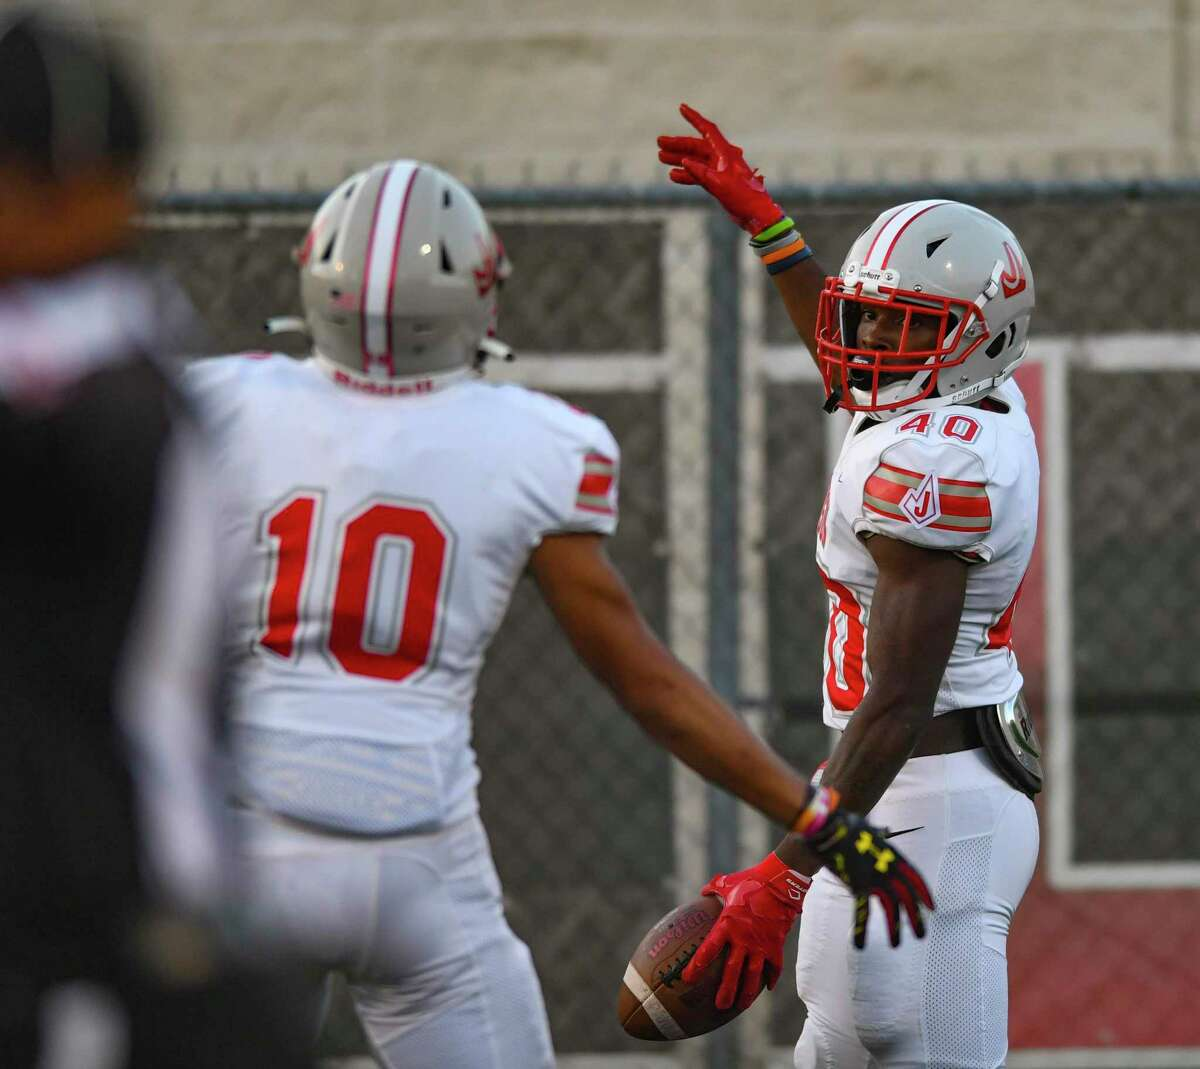 Marvin Beasley (40) of Judson celebrates after scoring a first-half touchdown during high school football action at Cavalier Stadium on Friday, Sept. 3, 2021.